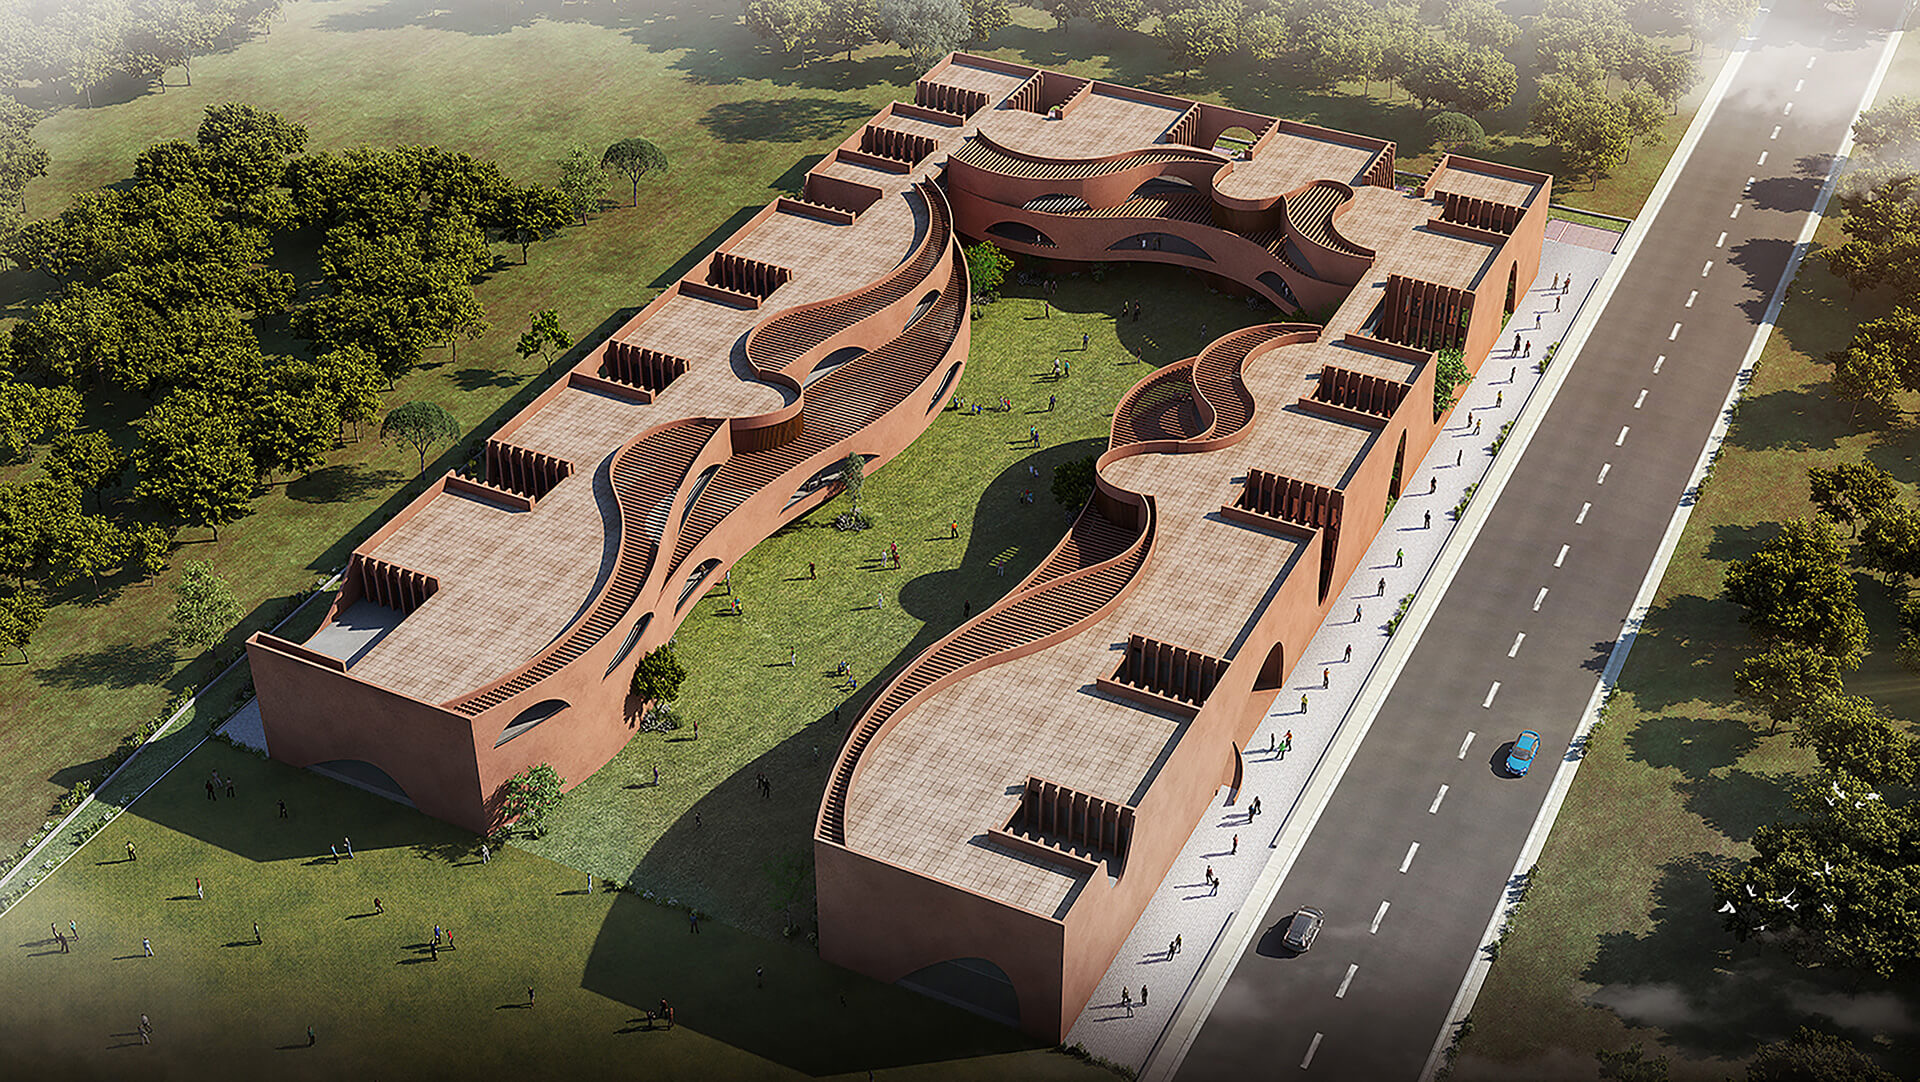 The aerial view of Learning Curves, Raipur | Learning Curves in Raipur by Sanjay Puri Architects | STIRworld